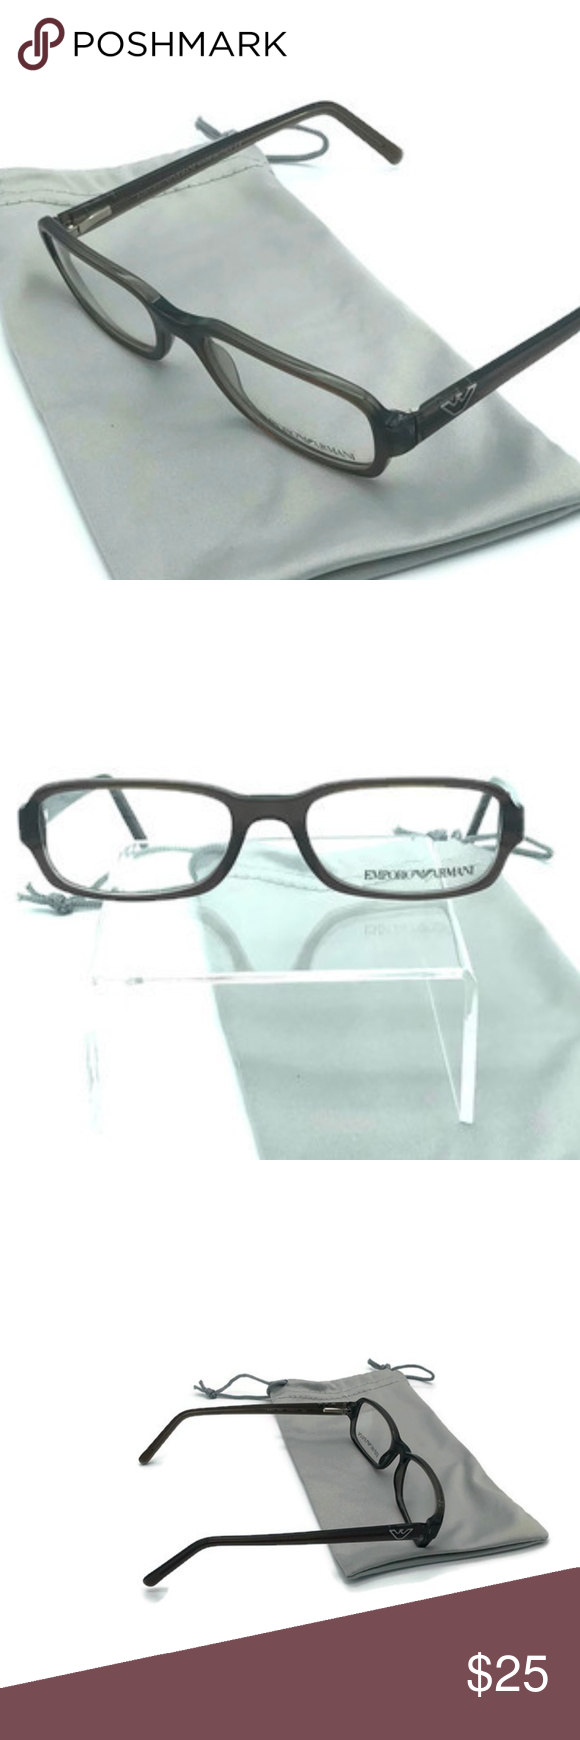 e3750e15e48b Emporio Armani eyeglass frames. All they need is YOUR lens. Comes with a  grey microfiber carrying case. Emporio Armani Accessories Glasses